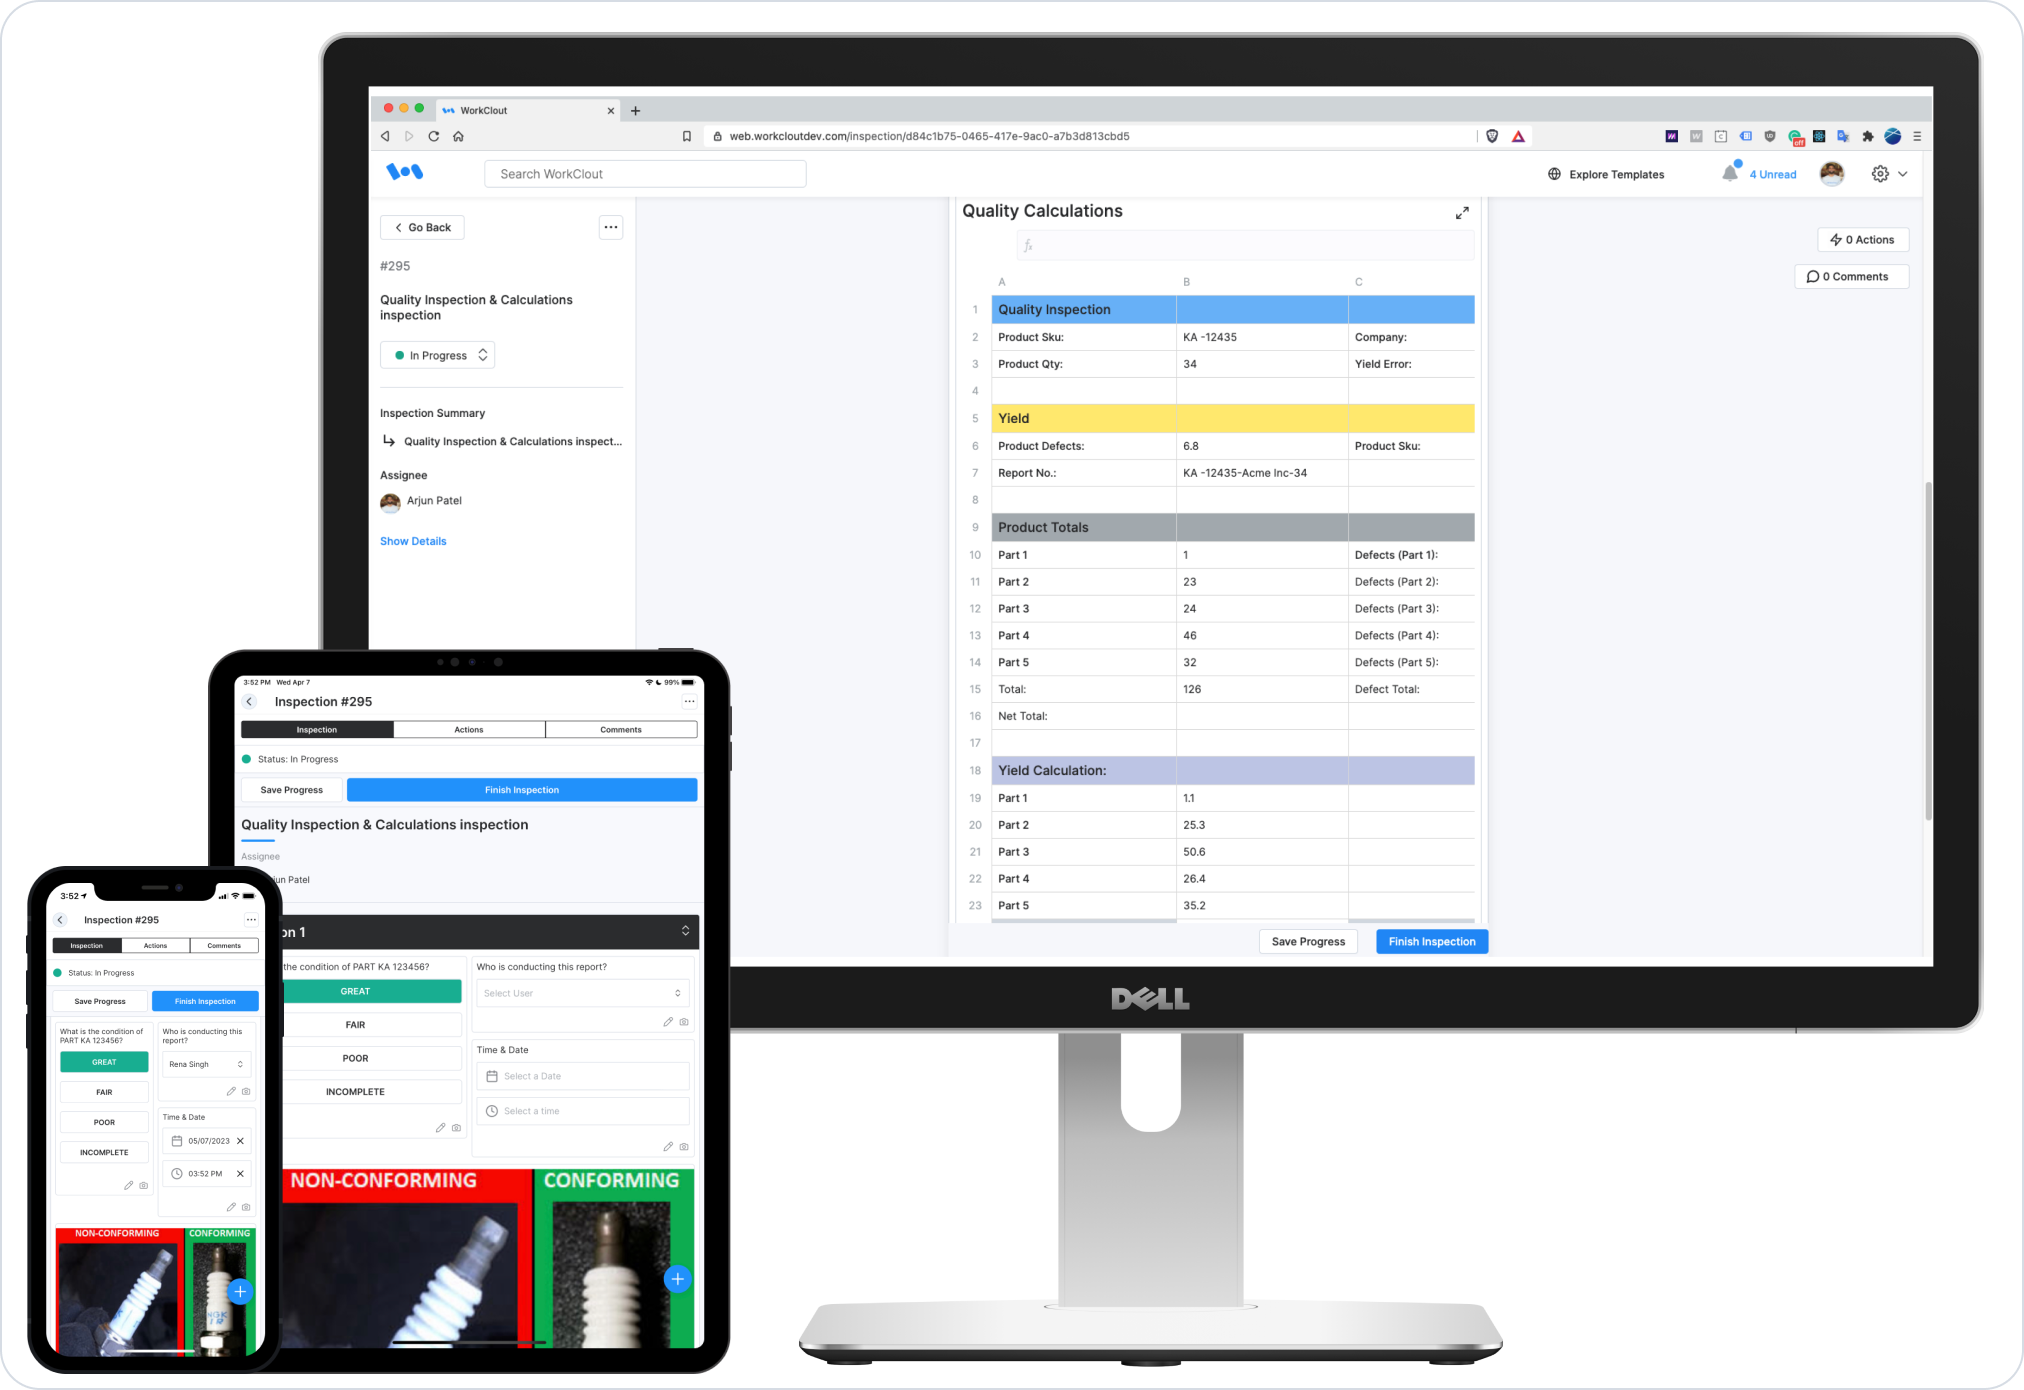 WorkClout is available on desktop, tablet, and mobile devices